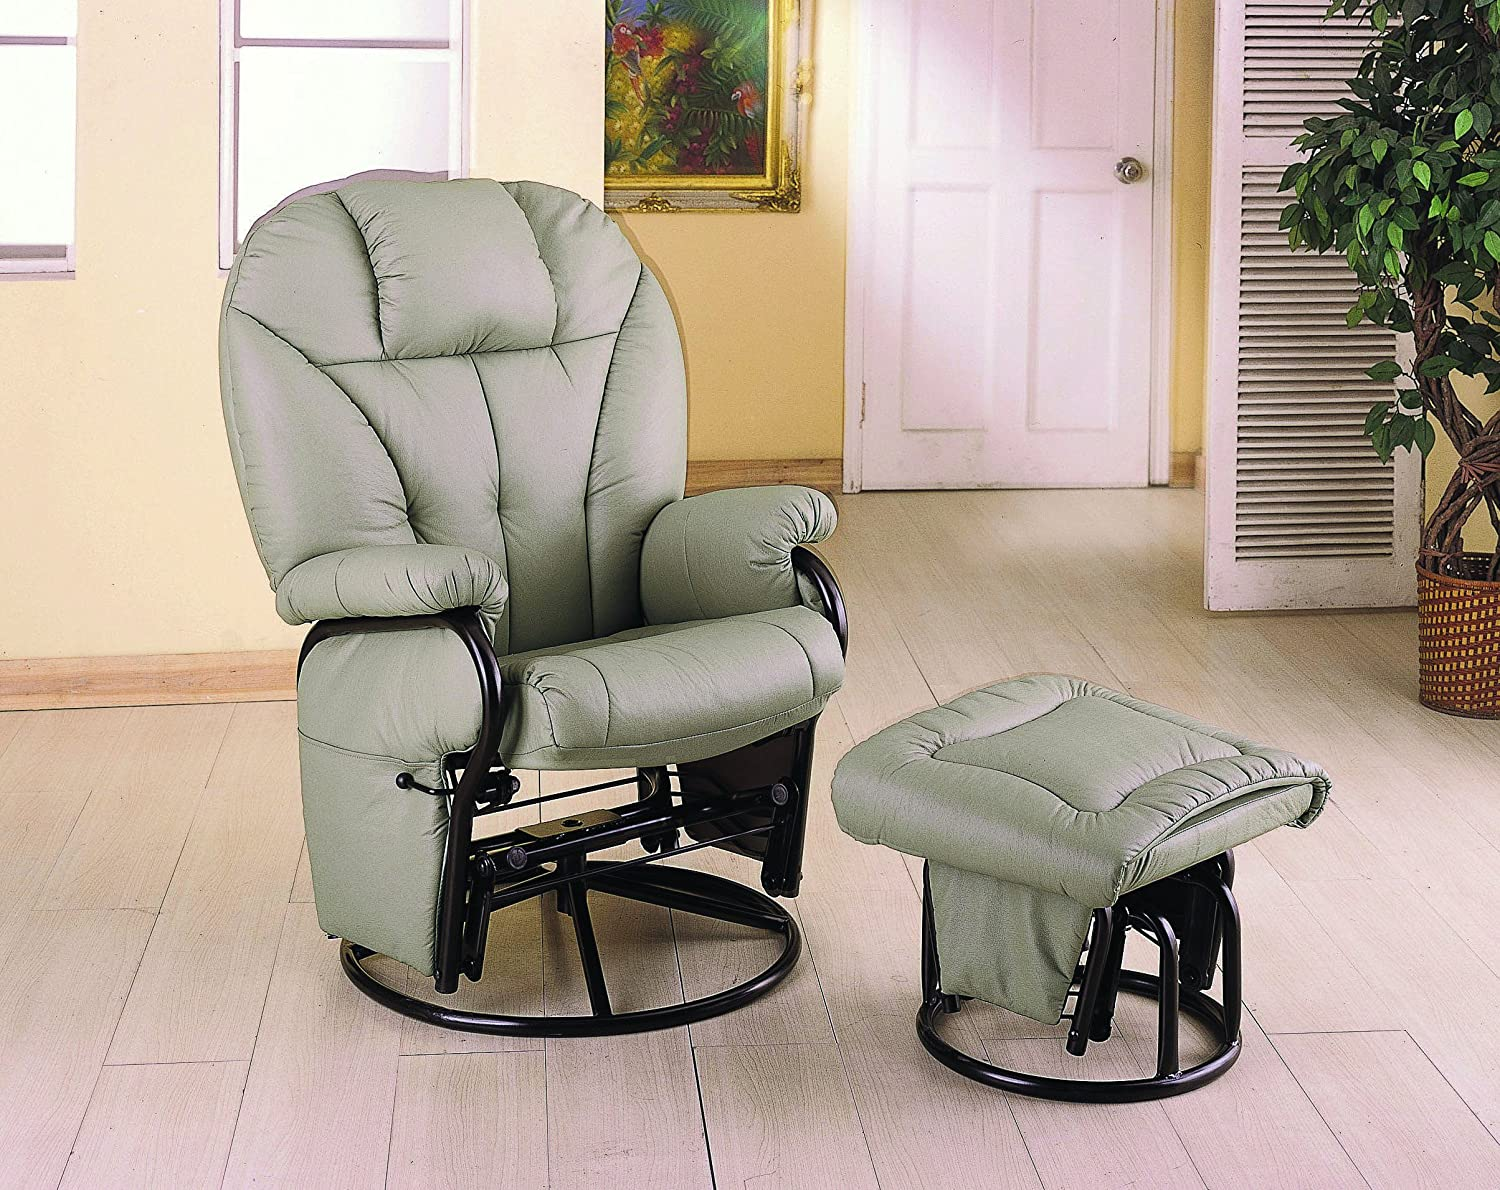 amazoncom gliders ottomans  rocking chairs baby products  - coaster knitted pillow style bone leatherette swivel glider rocking chairwottoman